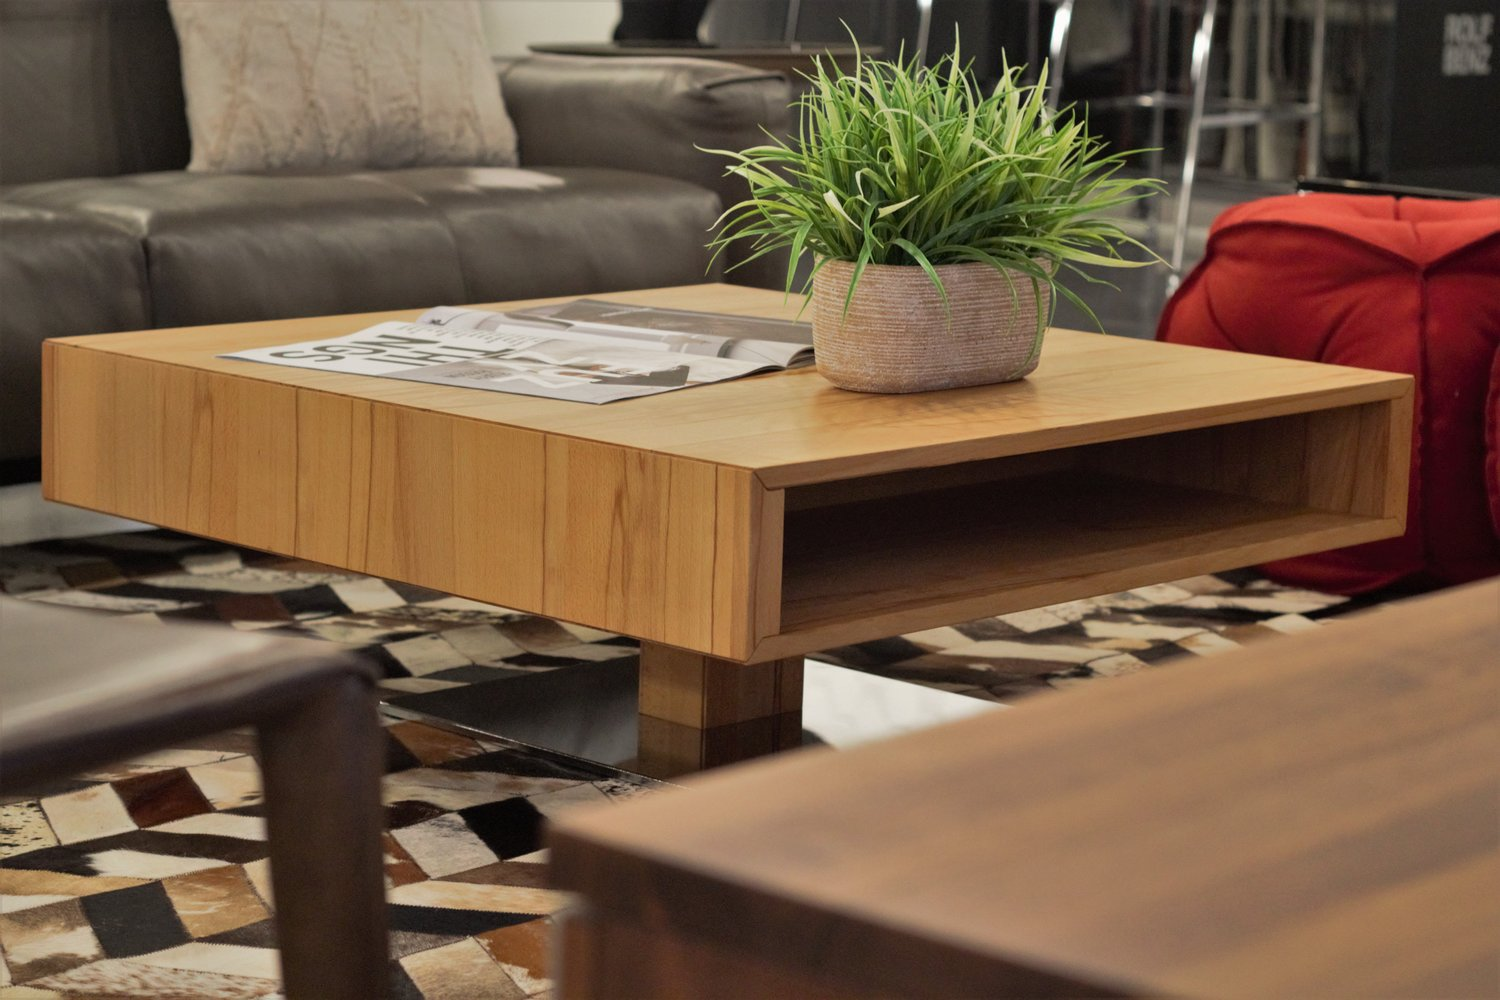 Lift Coffee Table.Lift Coffee Table Divine Design Center